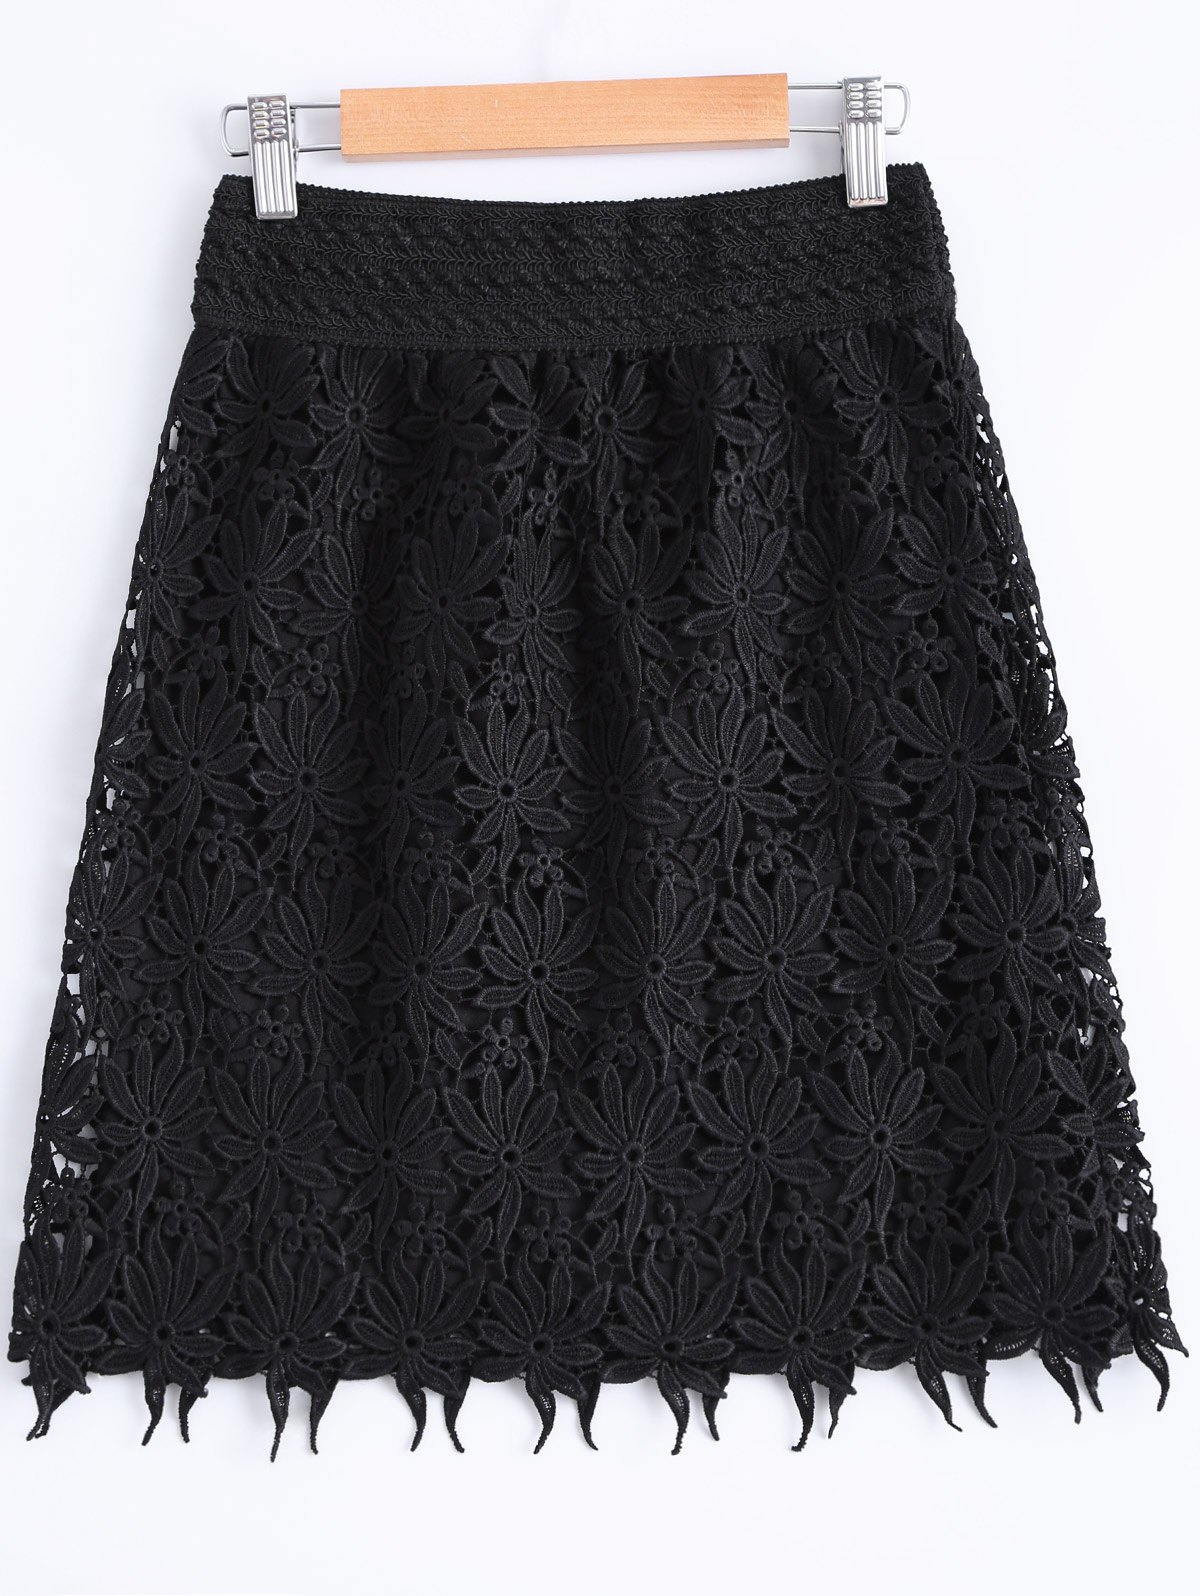 Fashionable Women's Elastic Waist Lace Overlay Bodycon Skirt - BLACK ONE SIZE(FIT SIZE XS TO M)